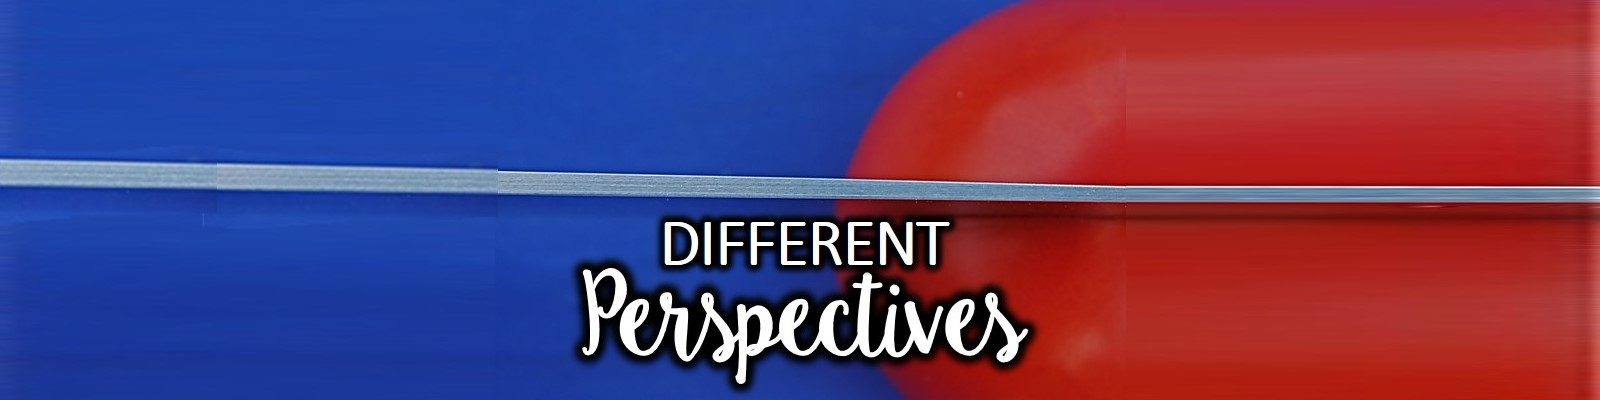 Bible Study / Reflection Questions on Different Perspectives